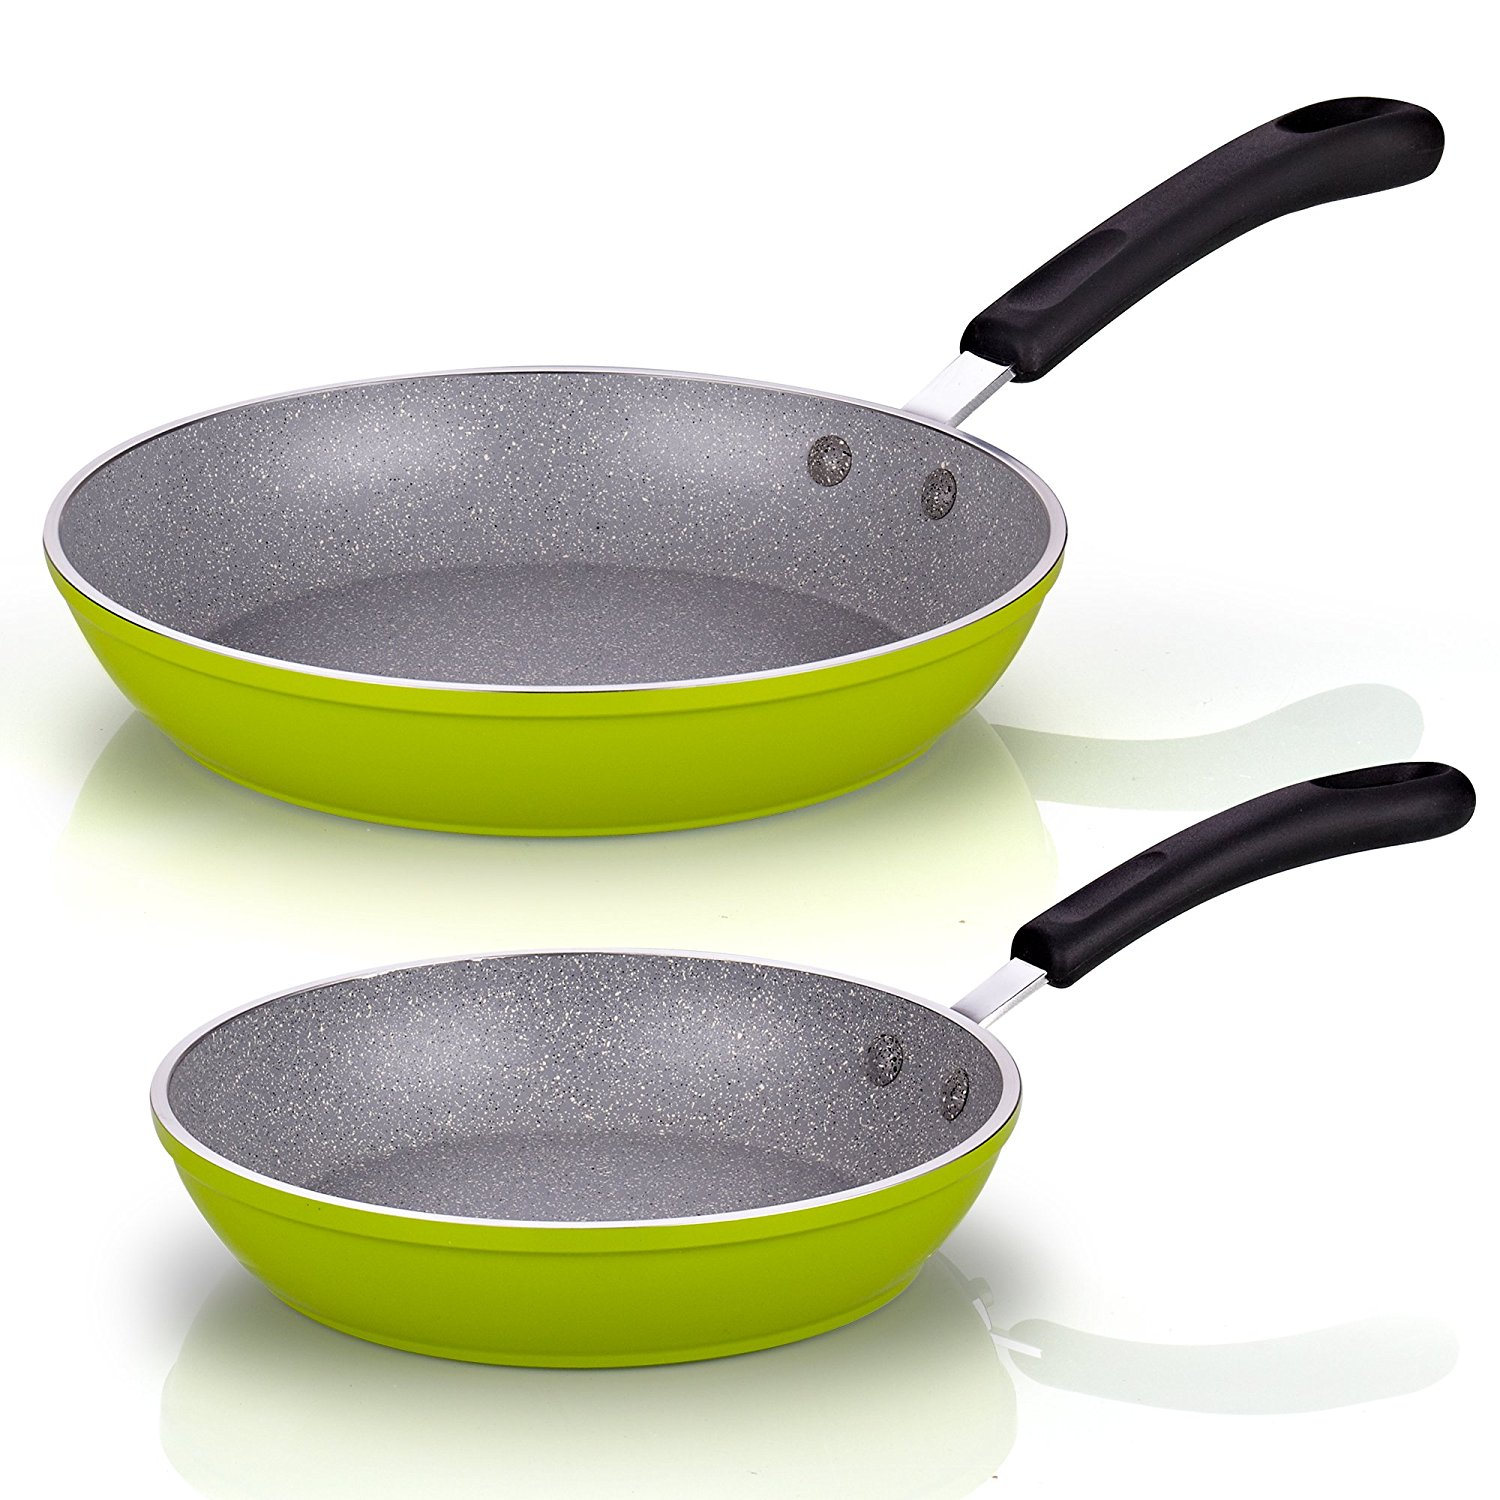 "Cook N Home 8"" and 10"" Nonstick Fry Pan Saute Skillet Set, Green"